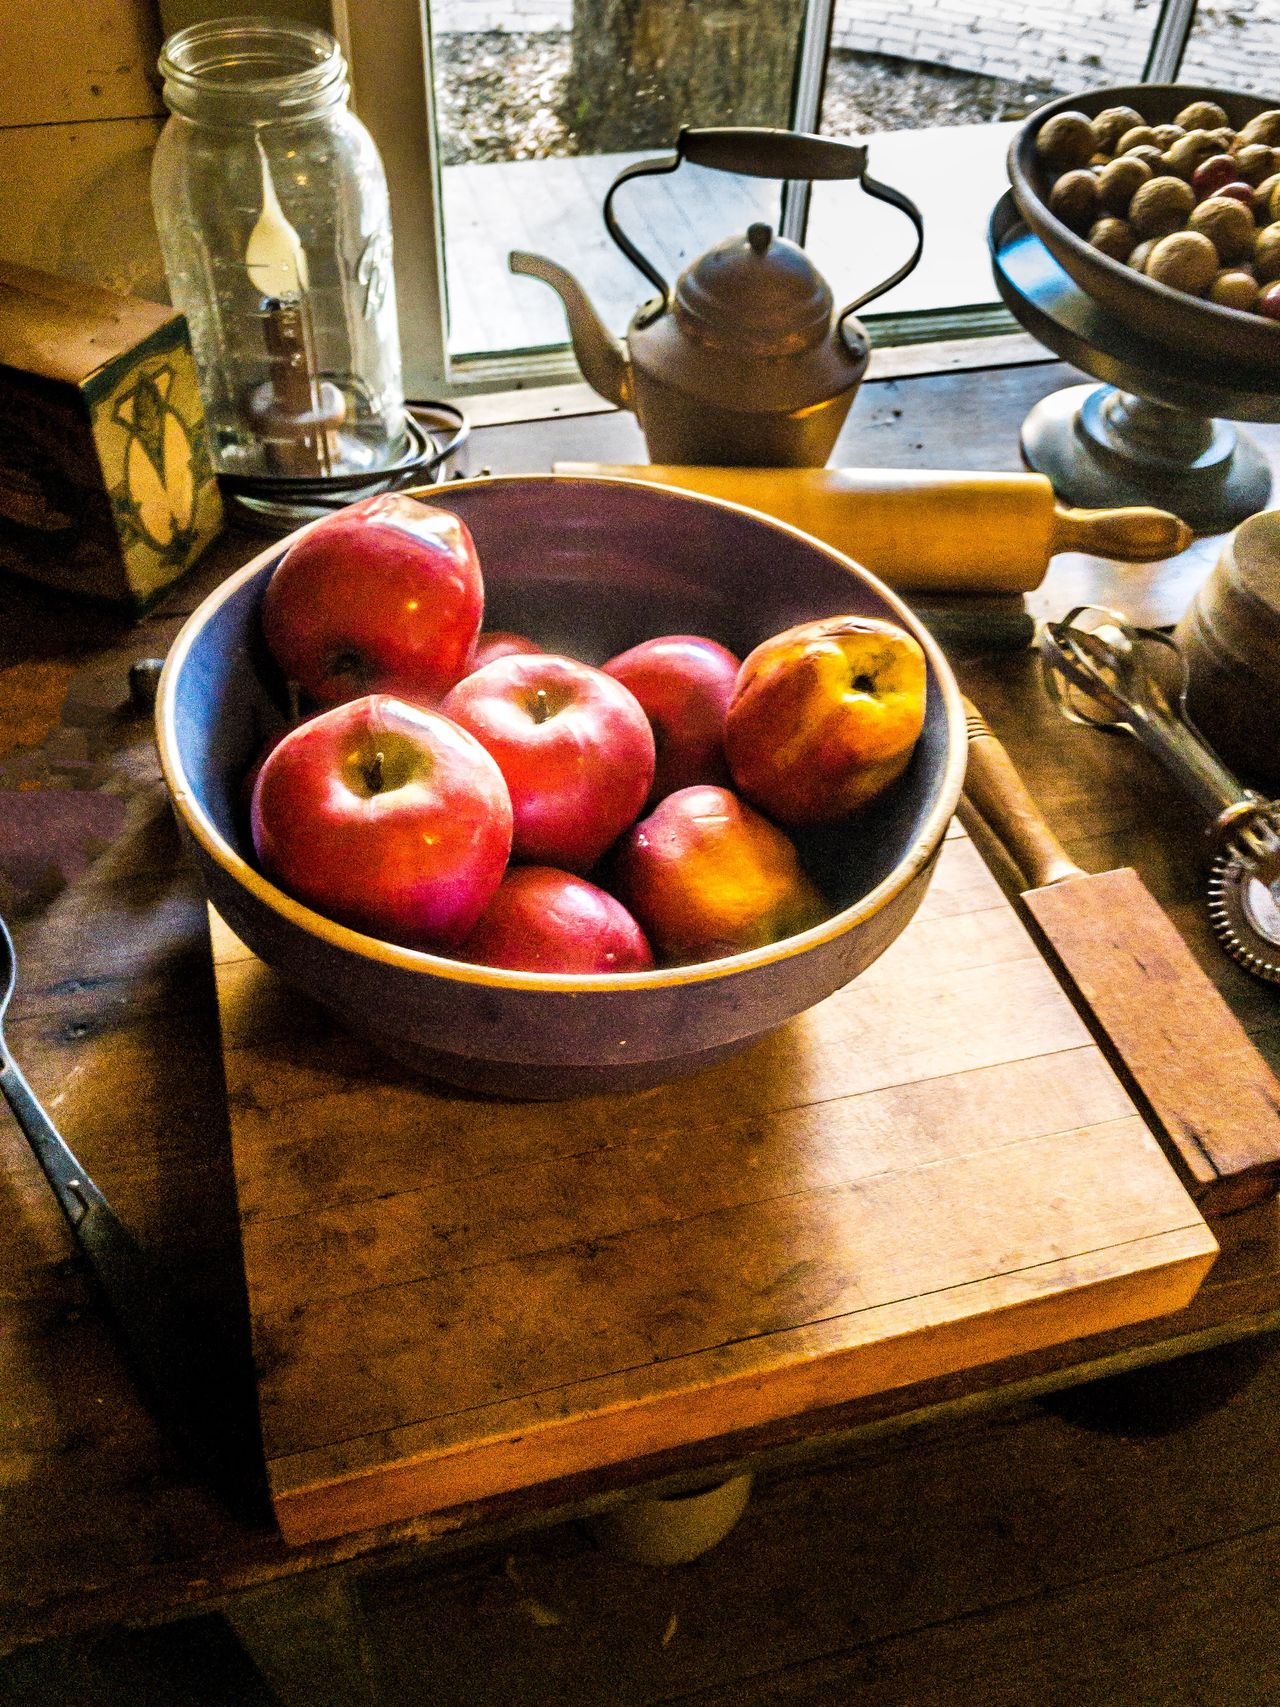 Still Life Apples Kitchen Old Fashioned Old Vintage Style Cozy Fruit Table Food And Drink Indoors  Healthy Eating Food Apple - Fruit Domestic Kitchen Bowl No People Freshness Cutting Board Home Interior Domestic Room Day Close-up